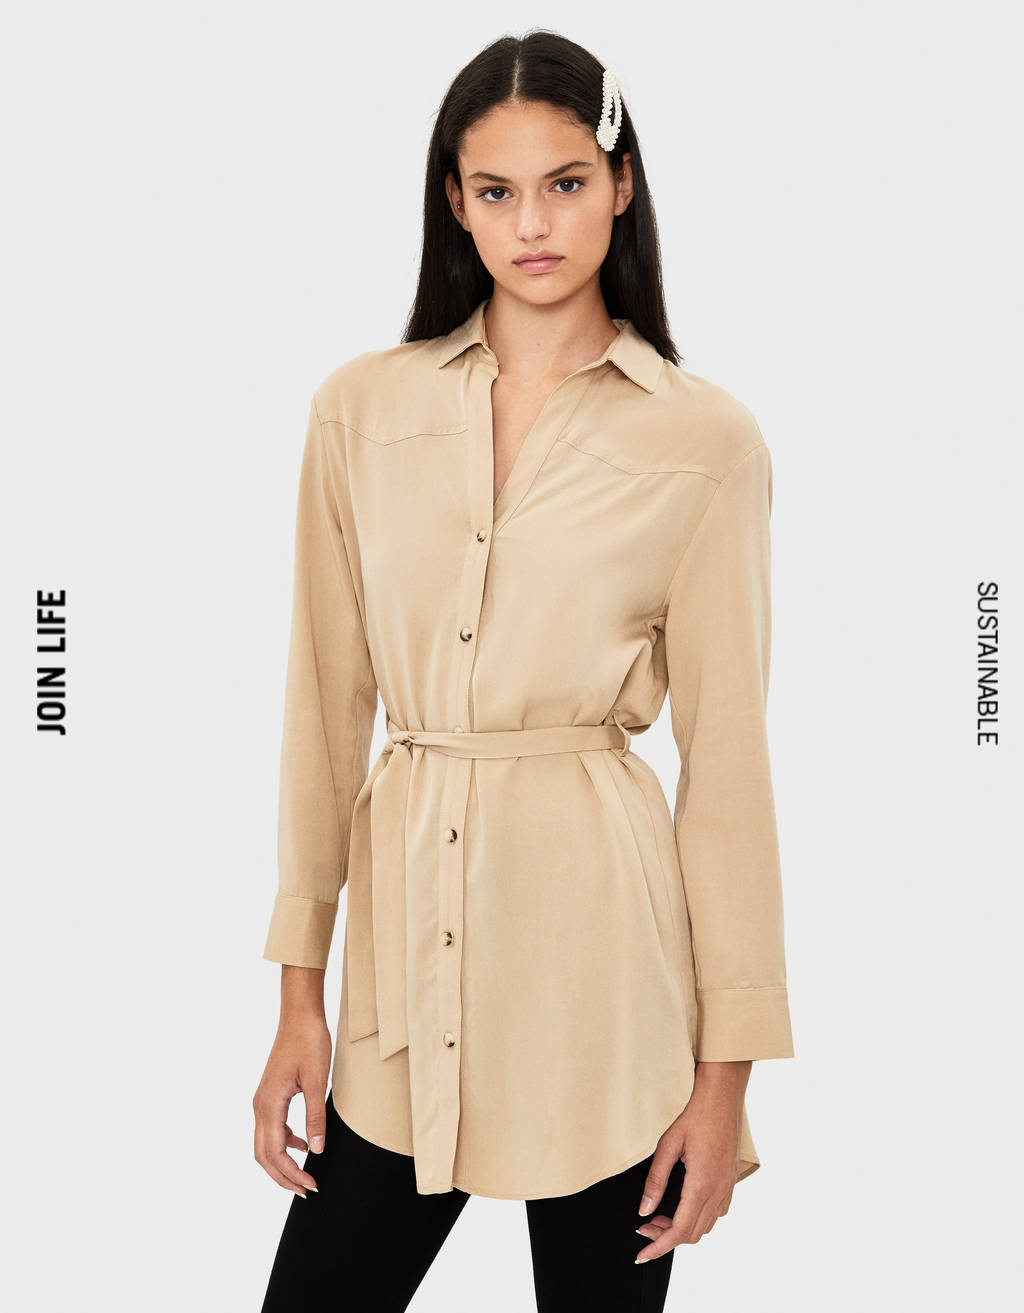 Synthetic rayon belted shirt